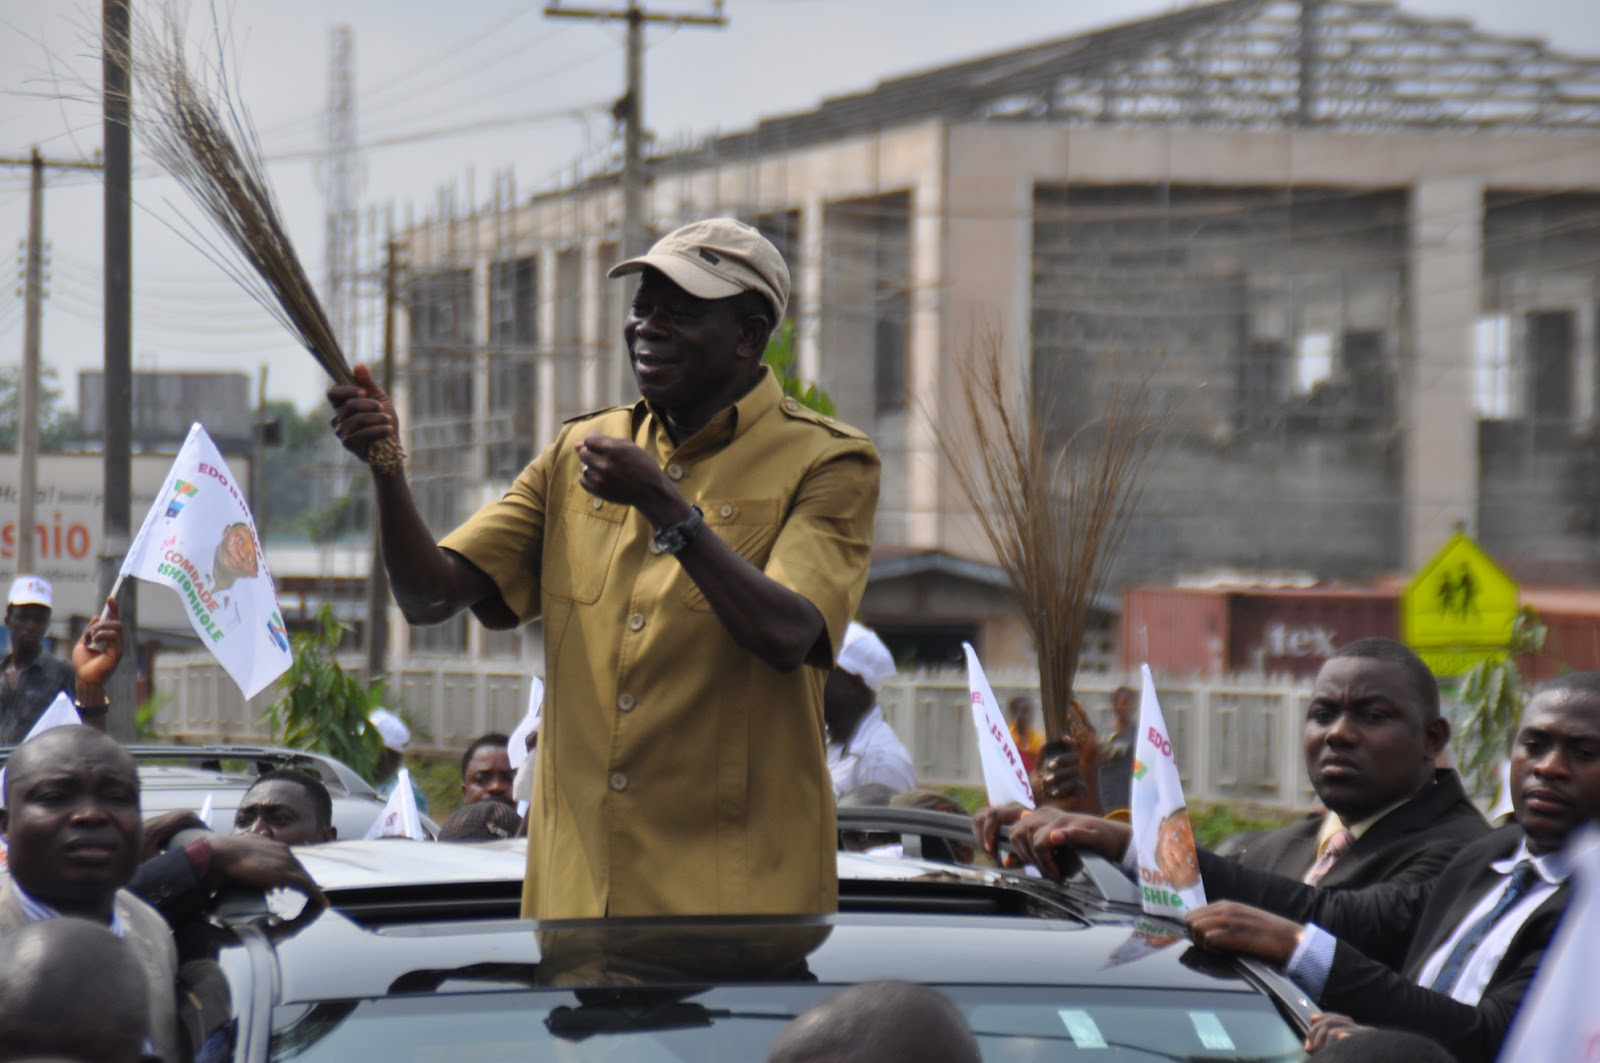 Adams Oshiomhole election tribunal victory in Benin City